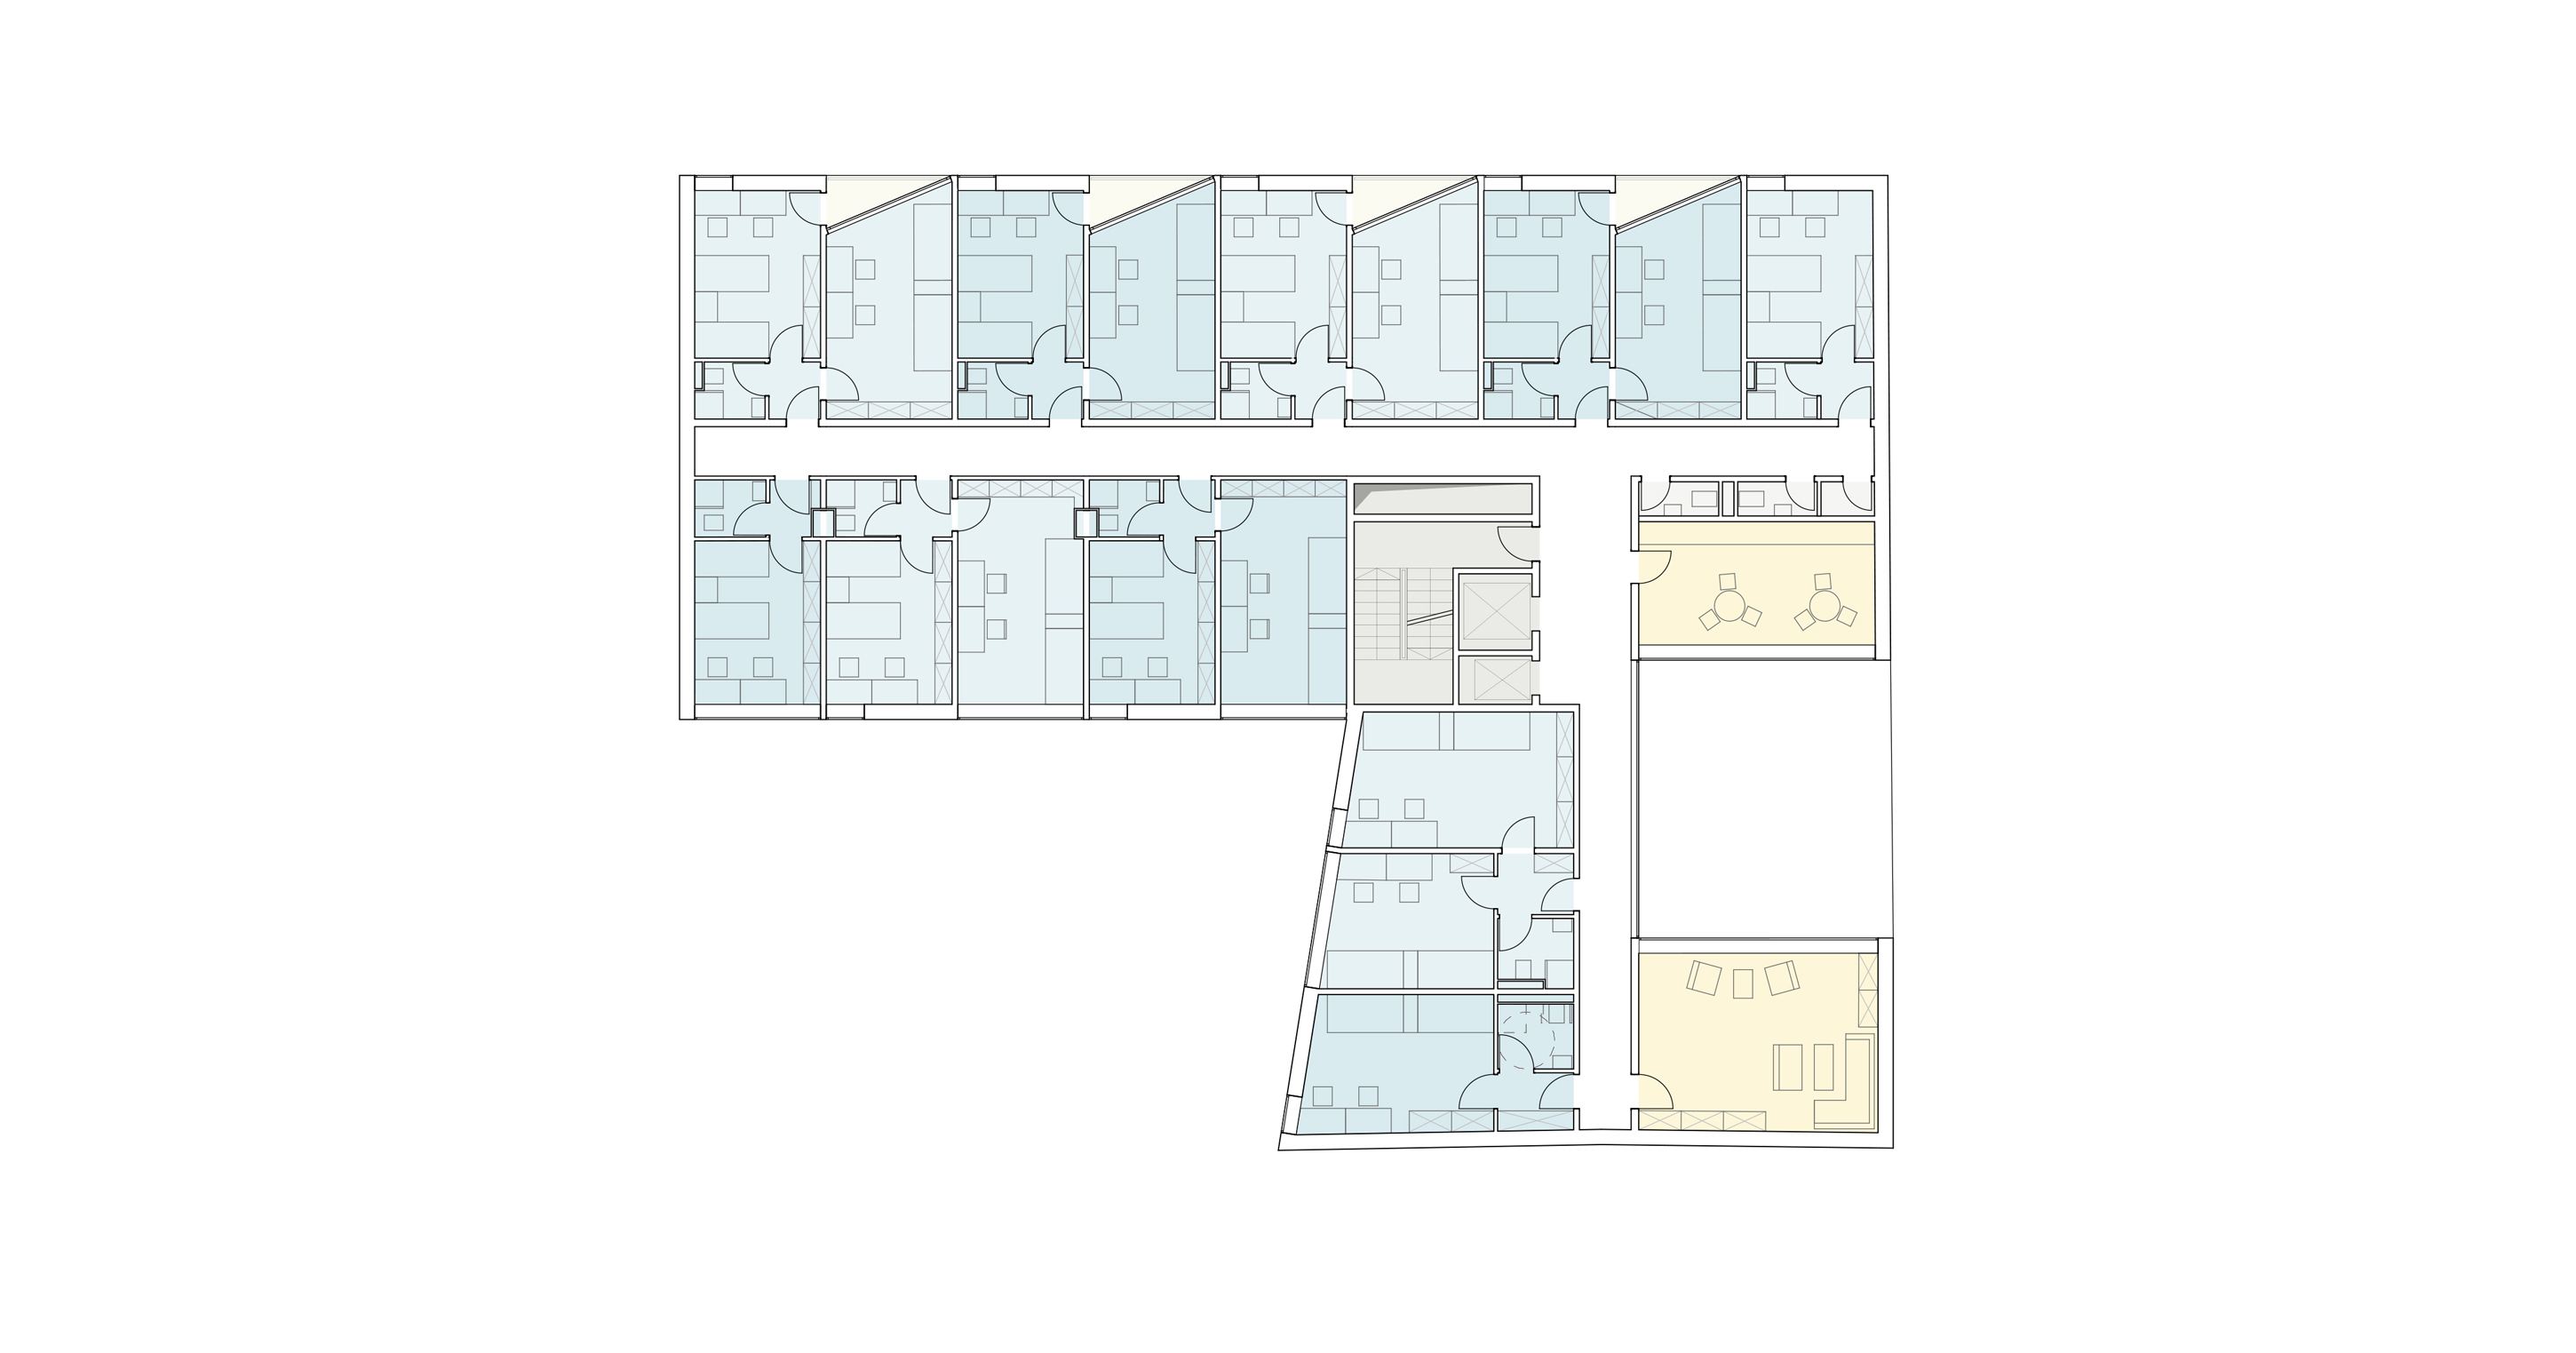 3h architecture corvinus student dormitories budapest plan